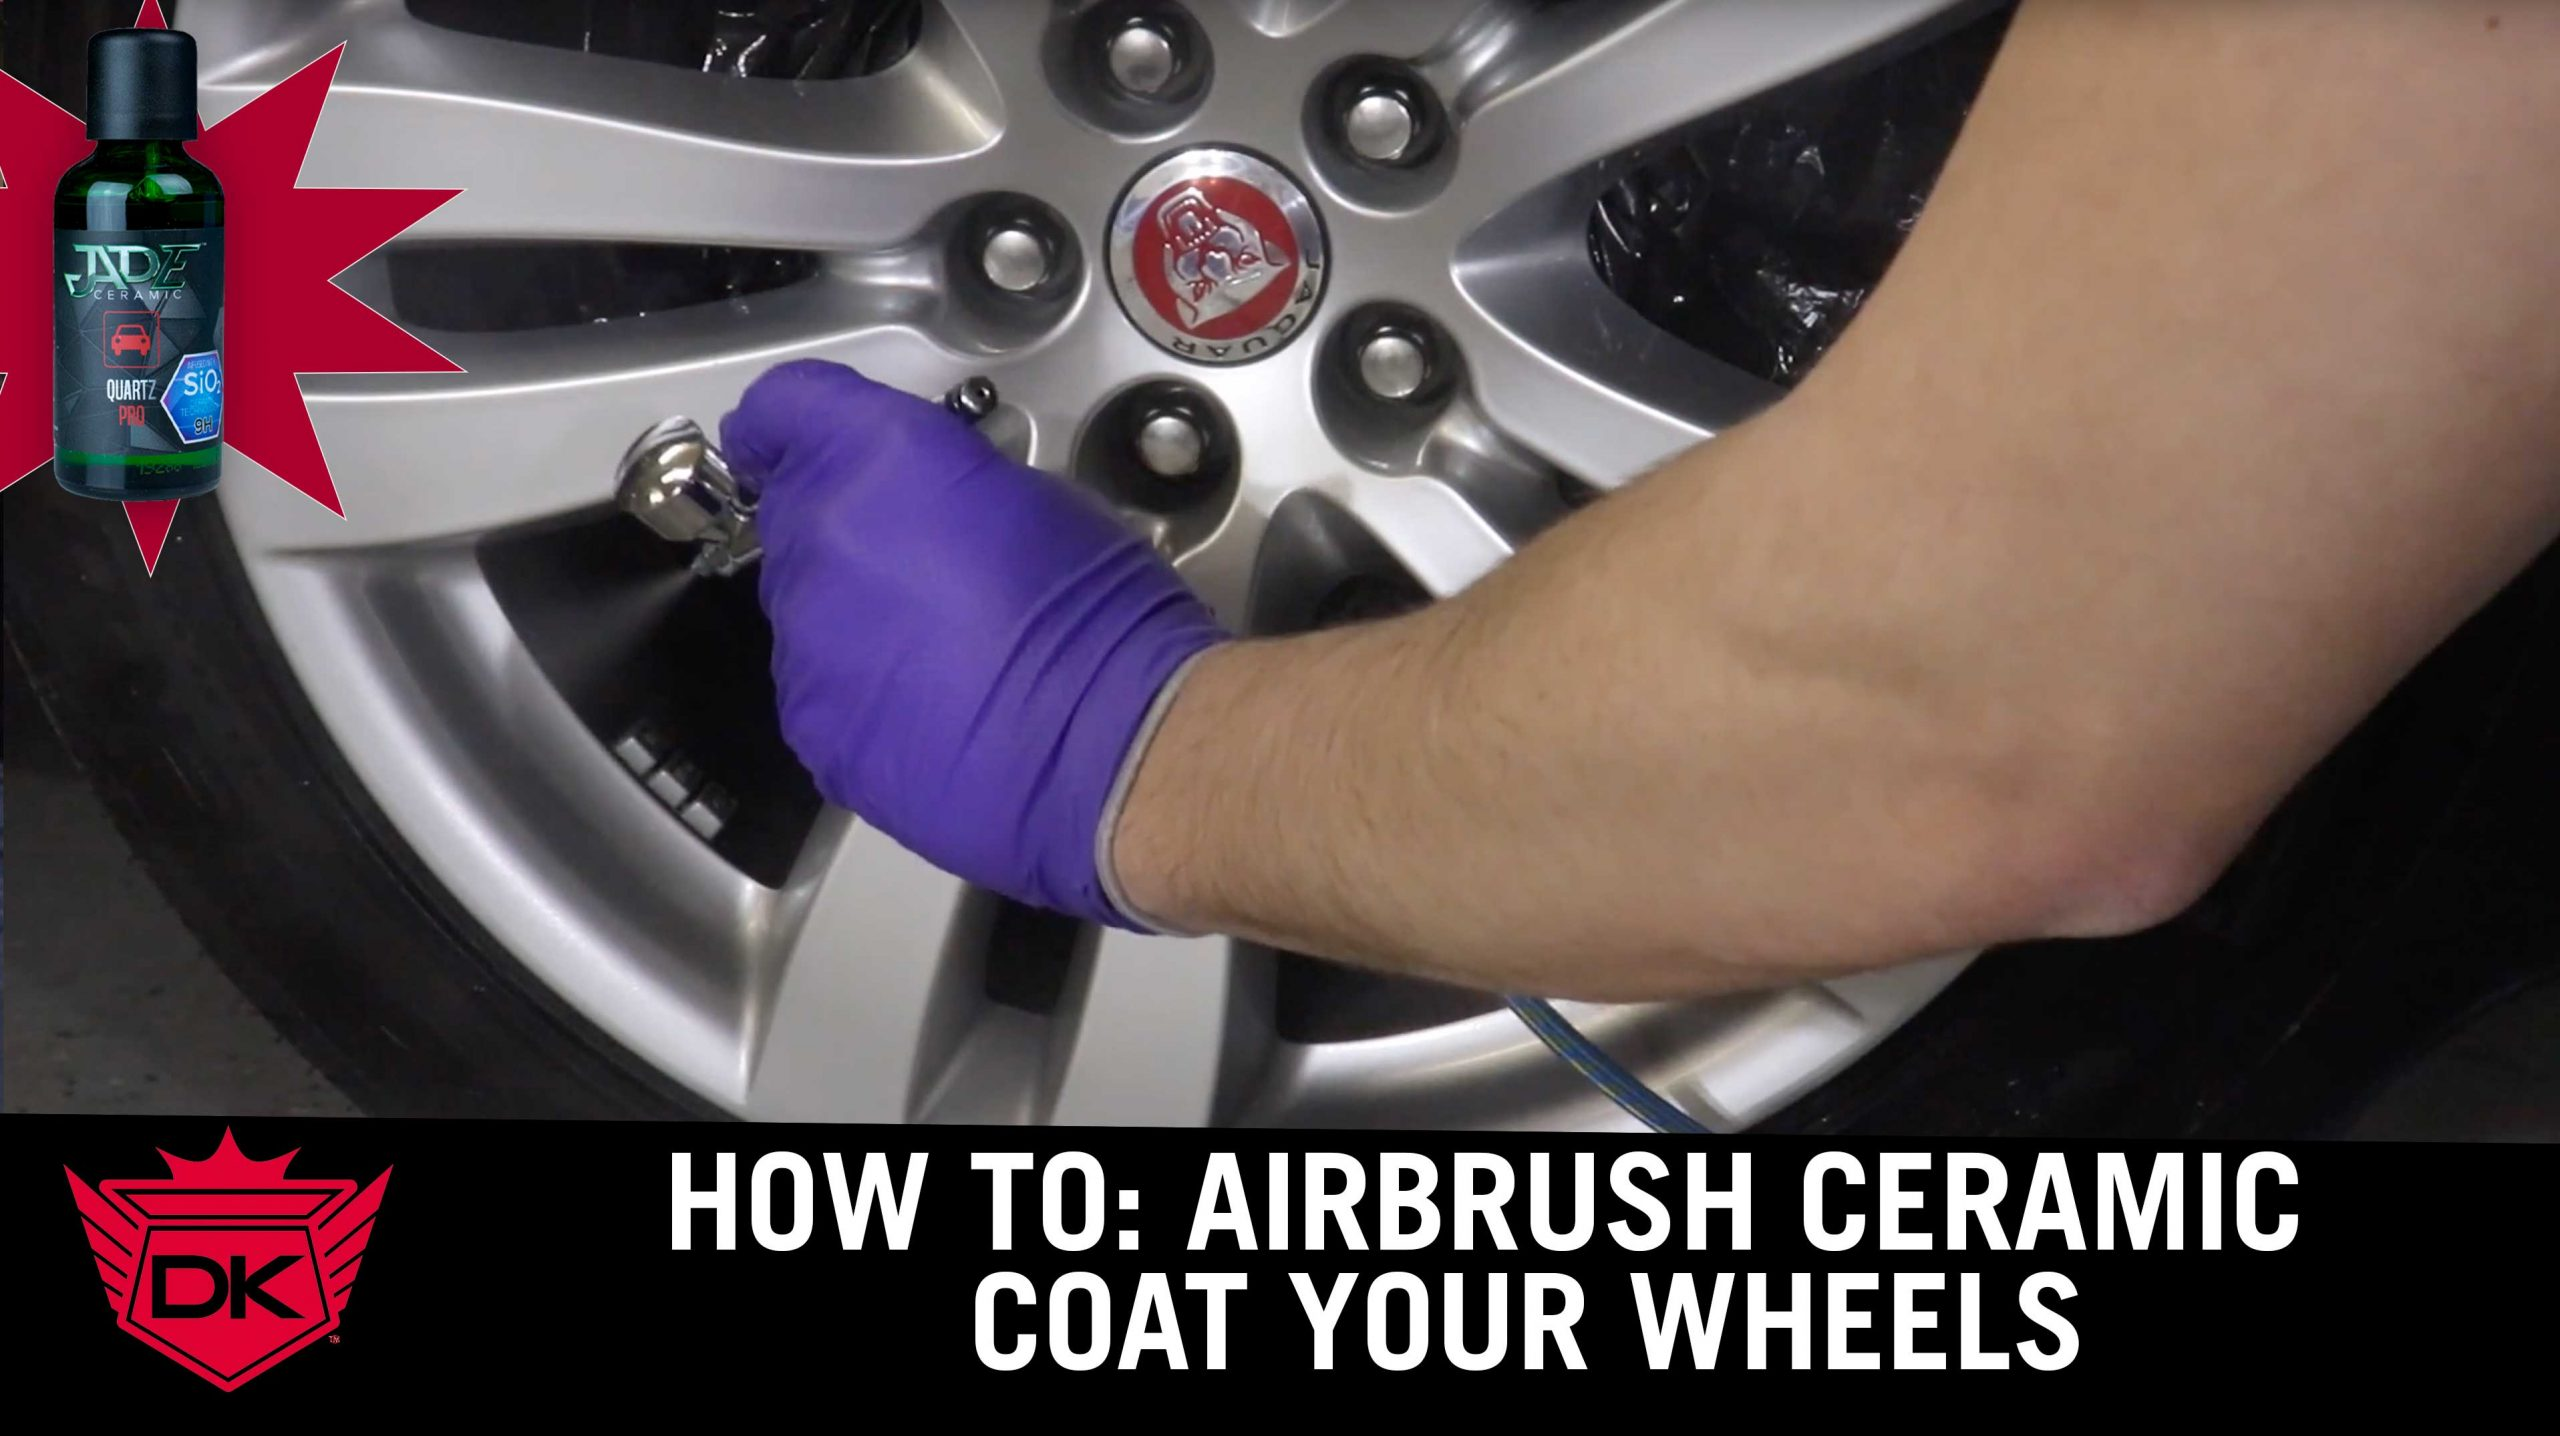 How to Ceramic Coat a Wheel With An Airbrush